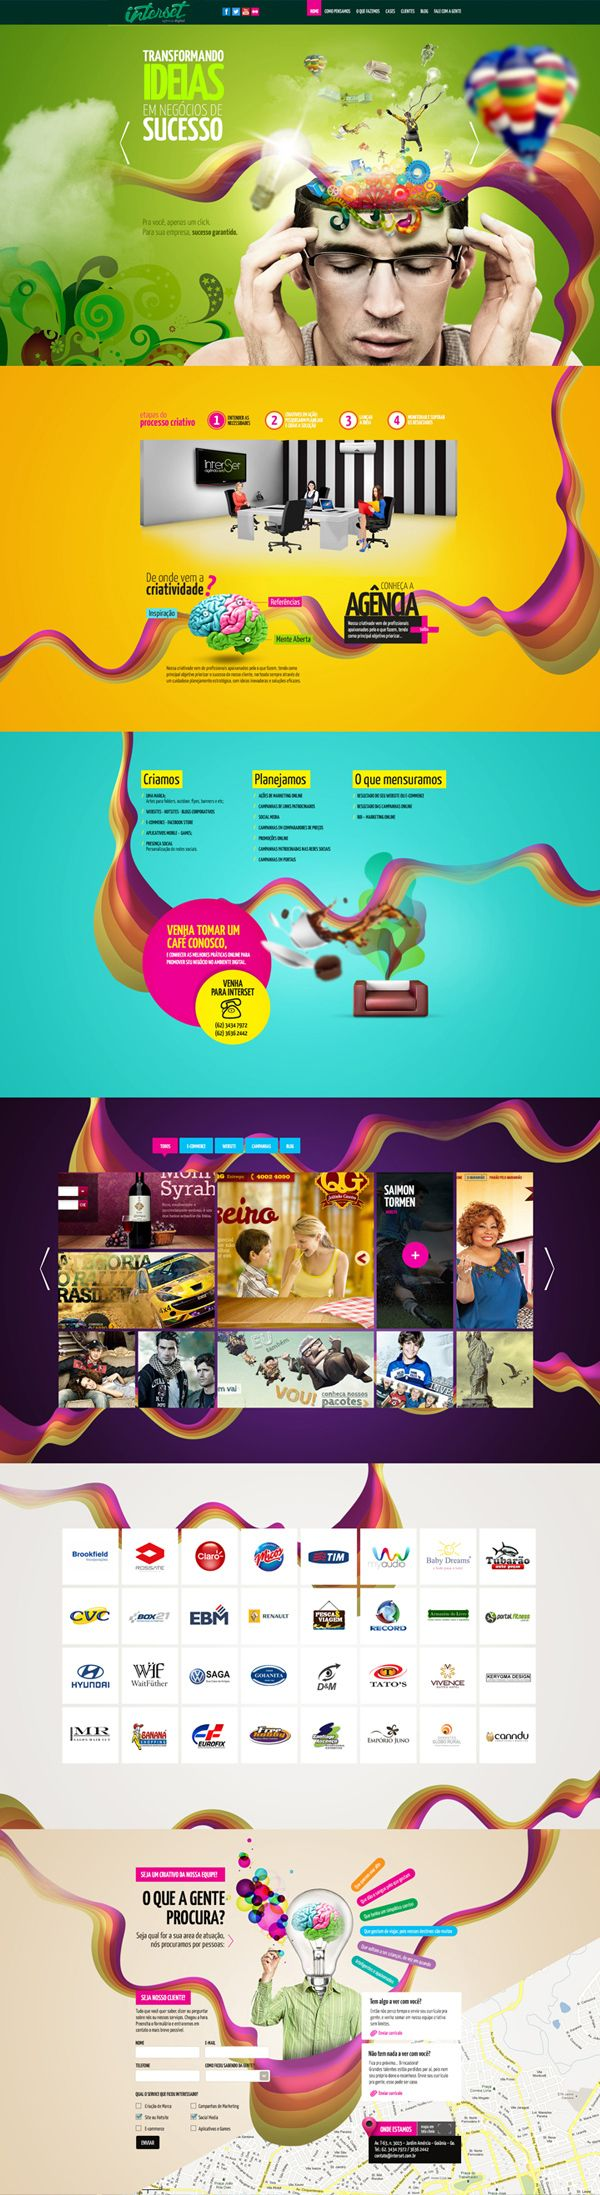 Unique Web Design, Interset Agency #webdesign #design (http://www.pinterest.com/aldenchong/)